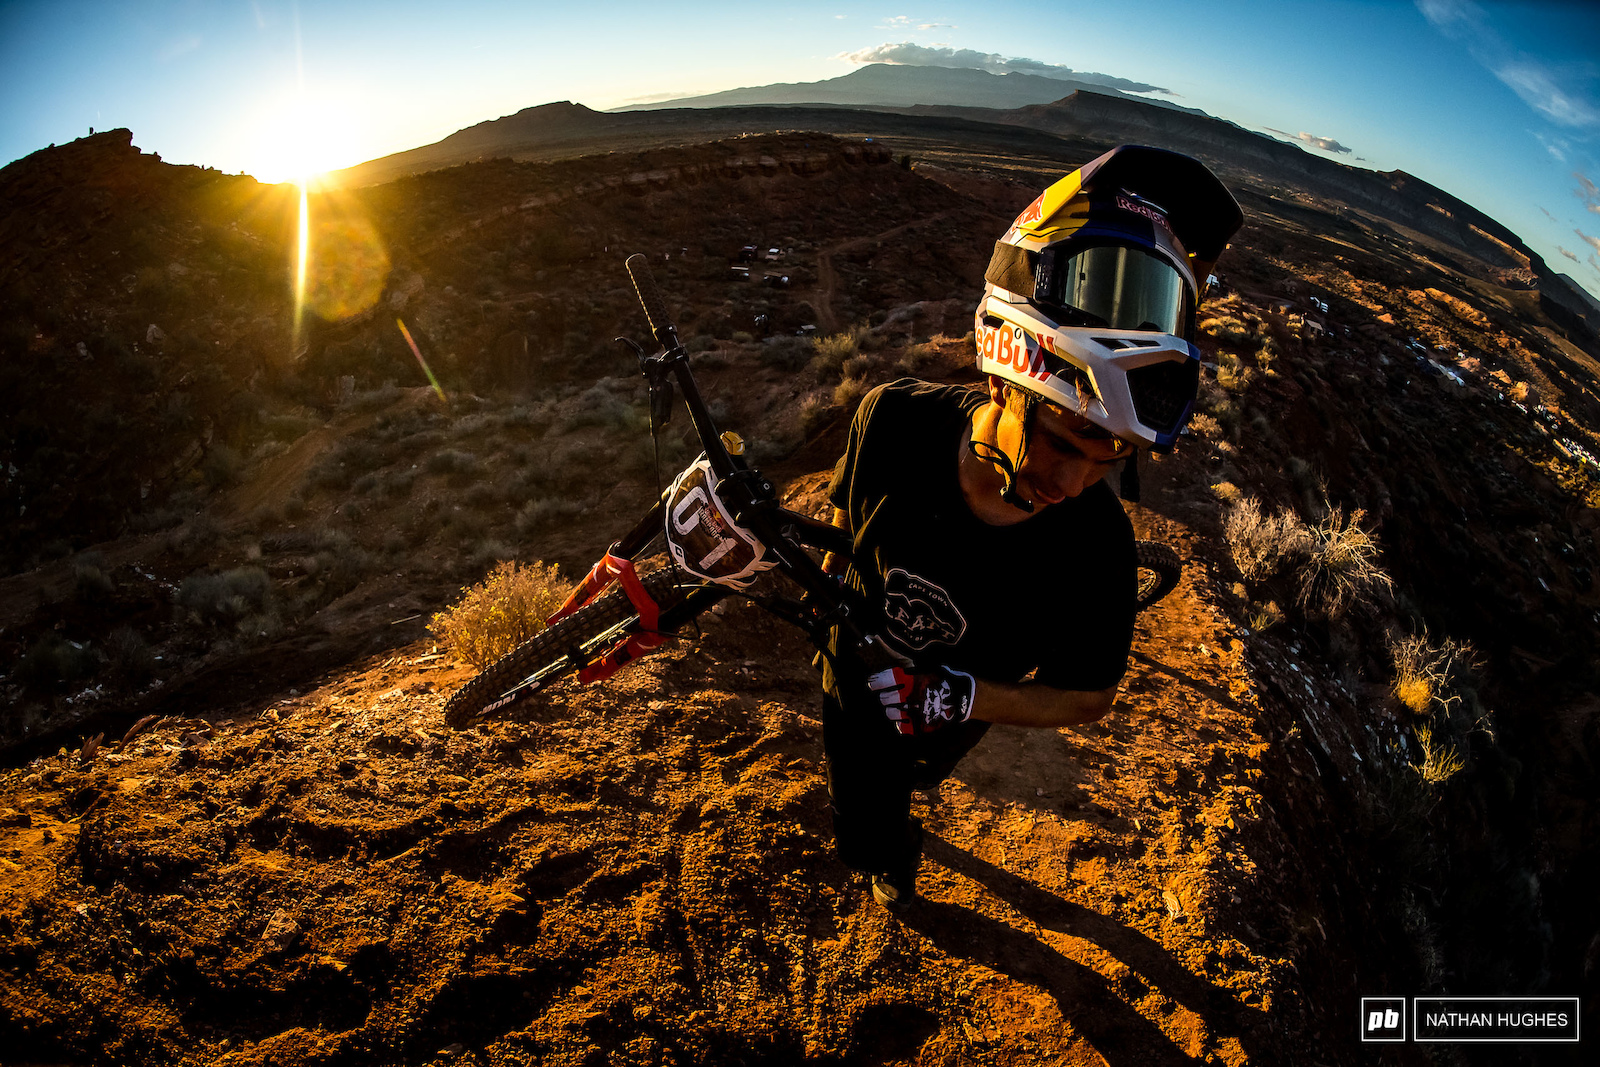 Szymon Godziek hiking up for a couple of hits before dark.